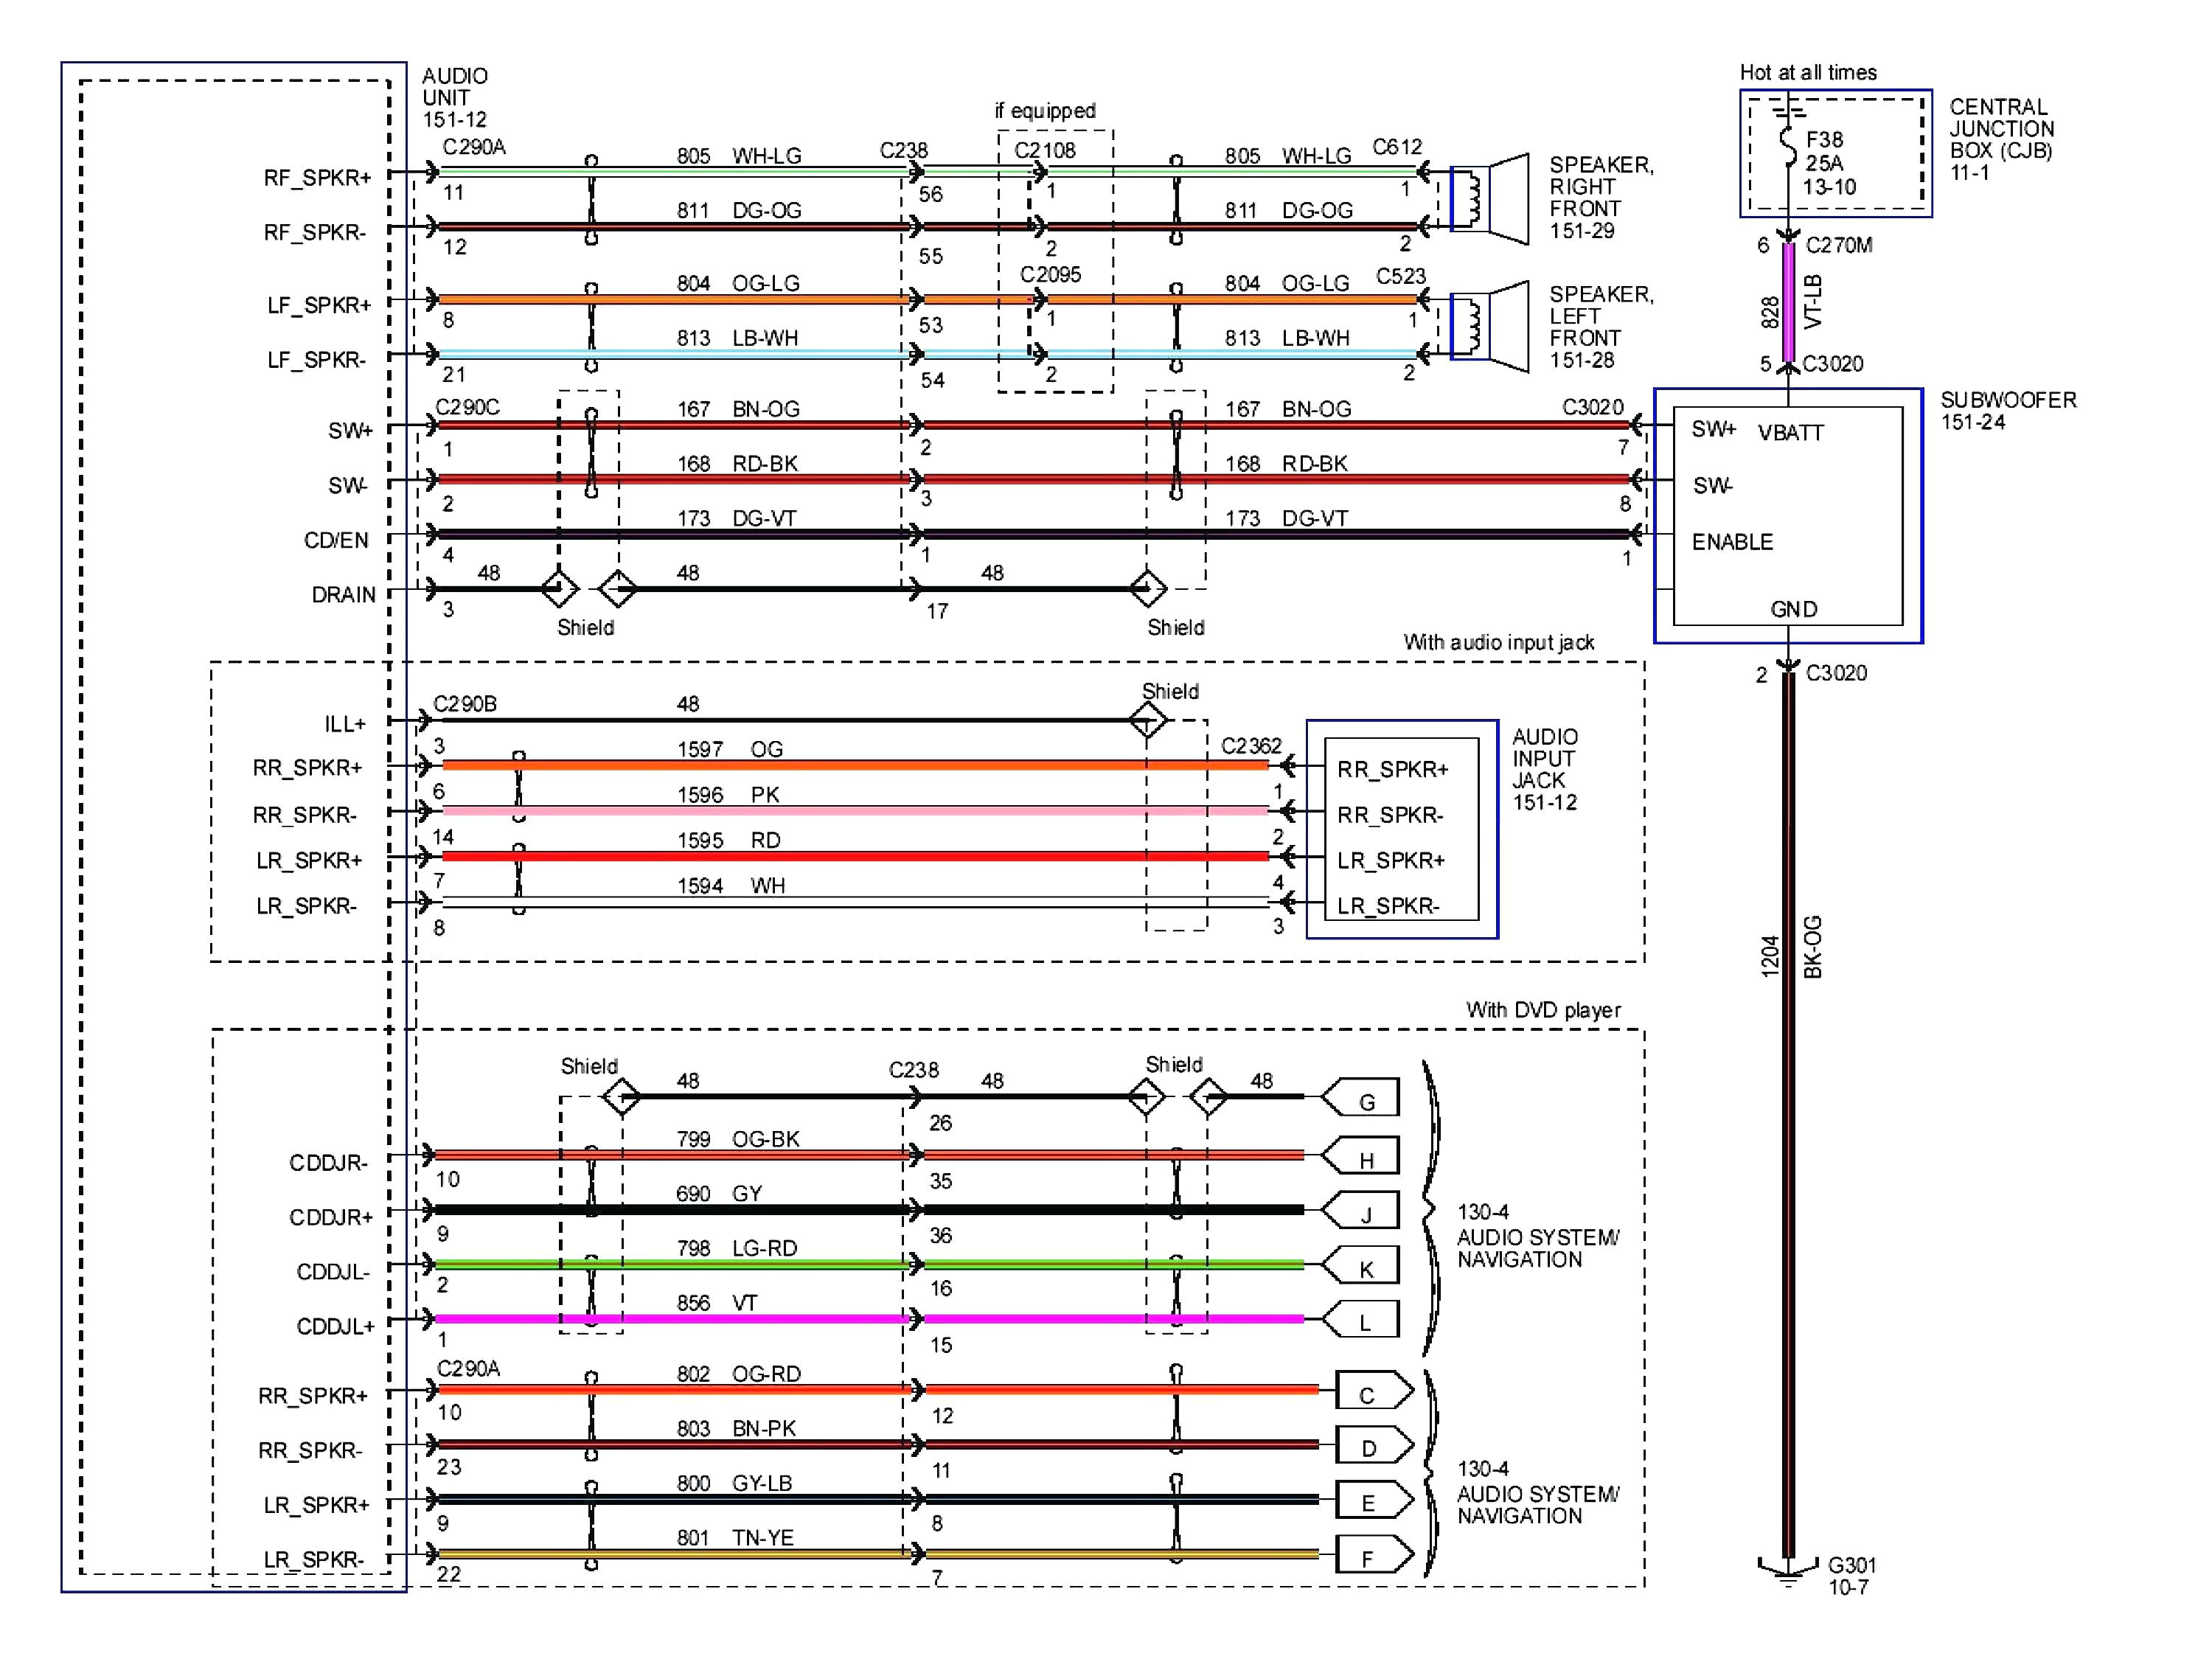 Jl Audio 500 1 Wiring Diagram Audio Alpine Diagram Car Wiring Xqd000340pyu Wiring Diagram Datasource